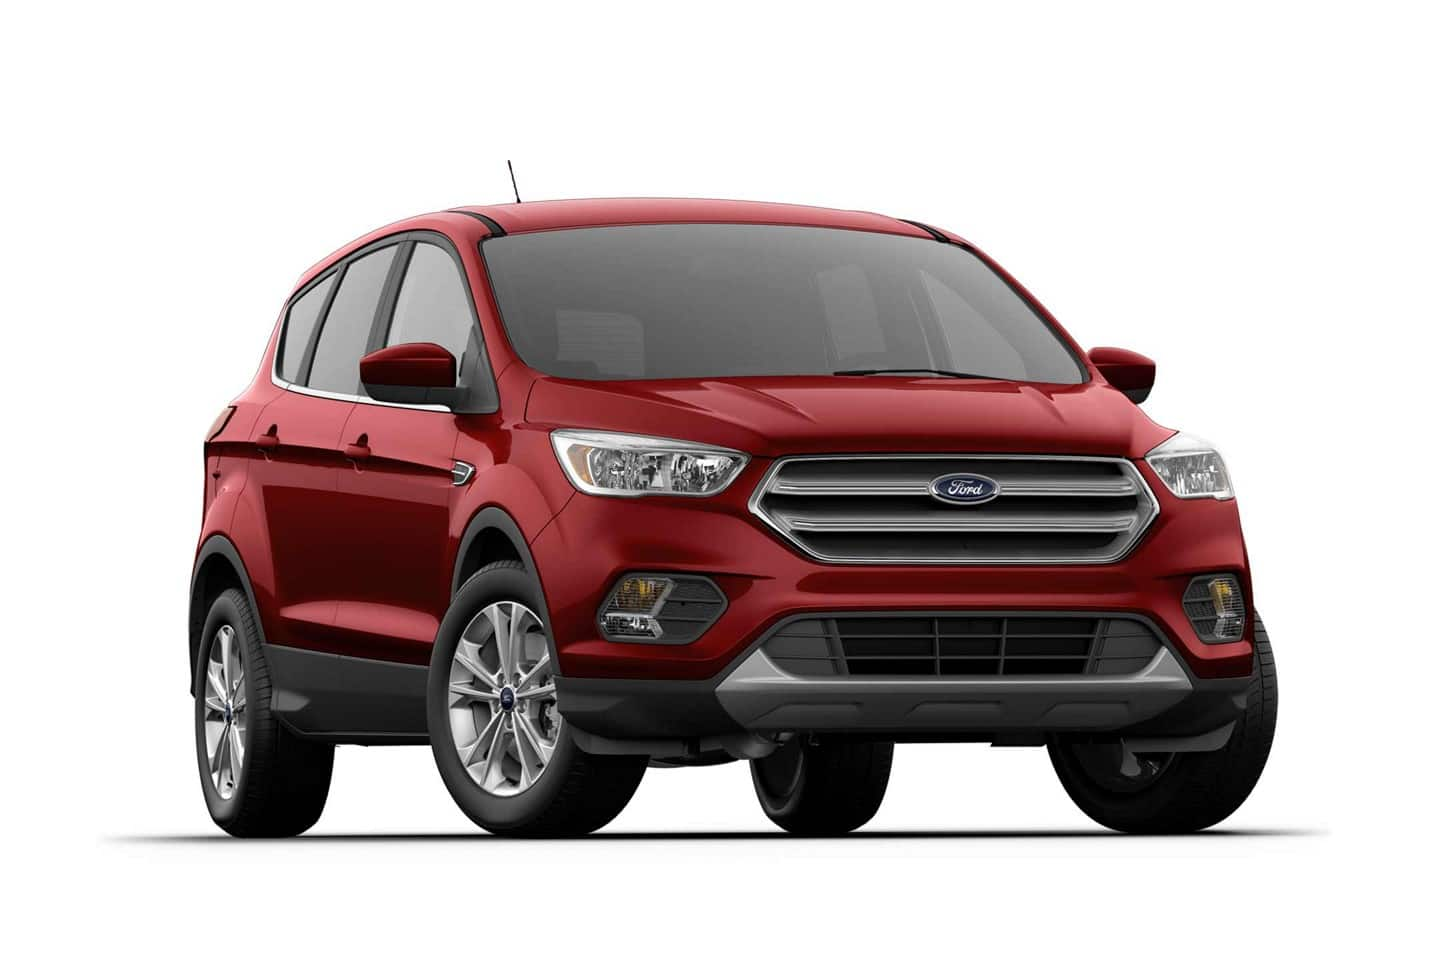 48 New Best When Will The 2019 Ford Escape Be Released Exterior Price for Best When Will The 2019 Ford Escape Be Released Exterior